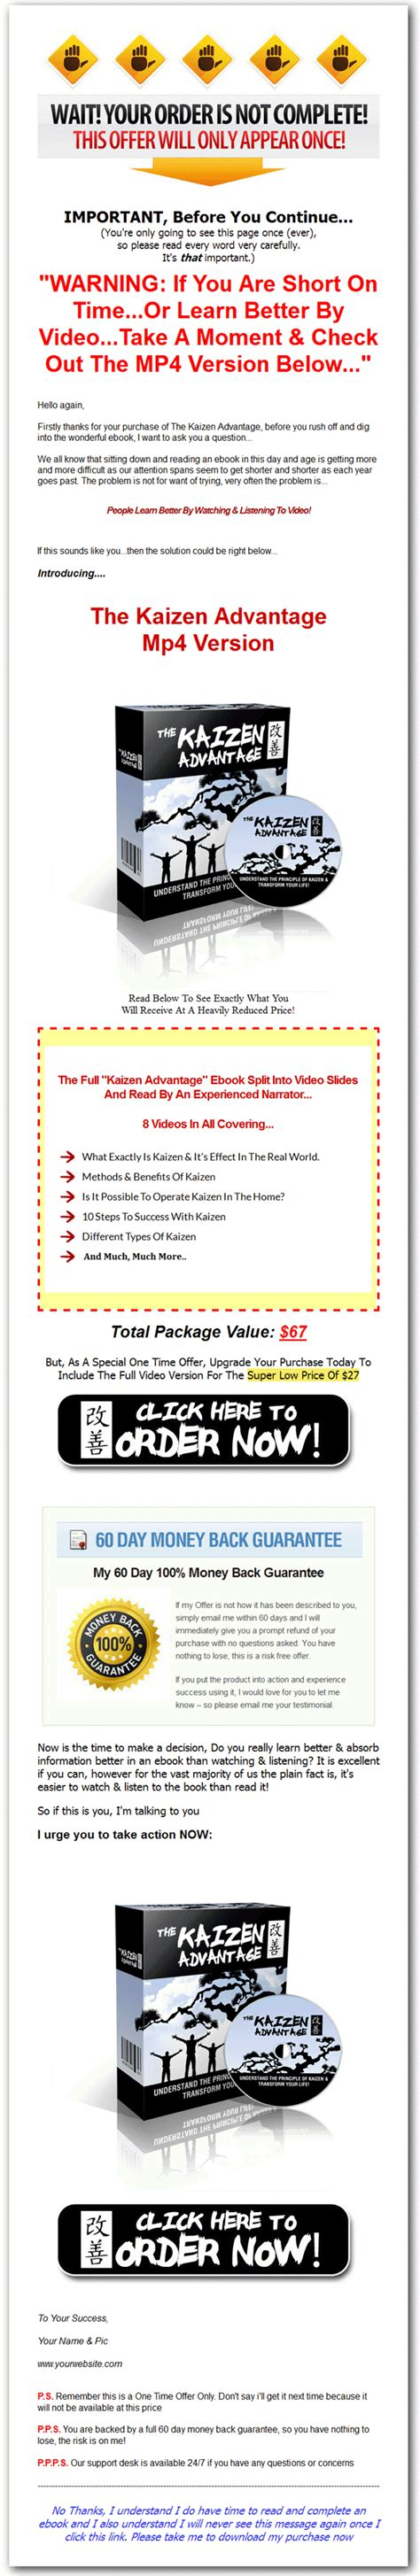 epub format advantages kaizen advantage ebook and videos with master resale rights